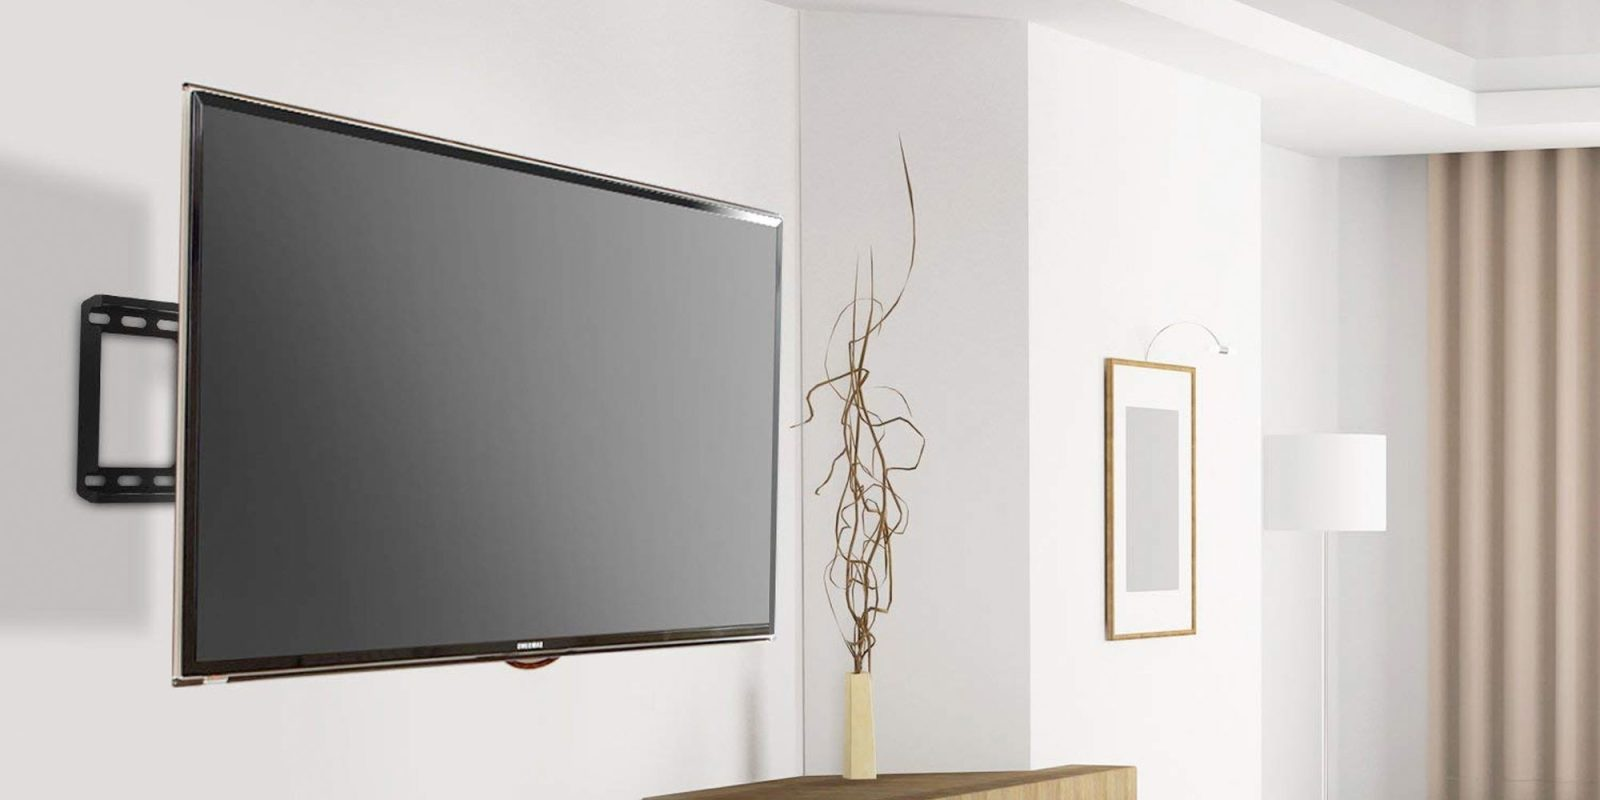 Hang Your Tv Finally Hang Your Tv W This Full Motion Wall Mount For